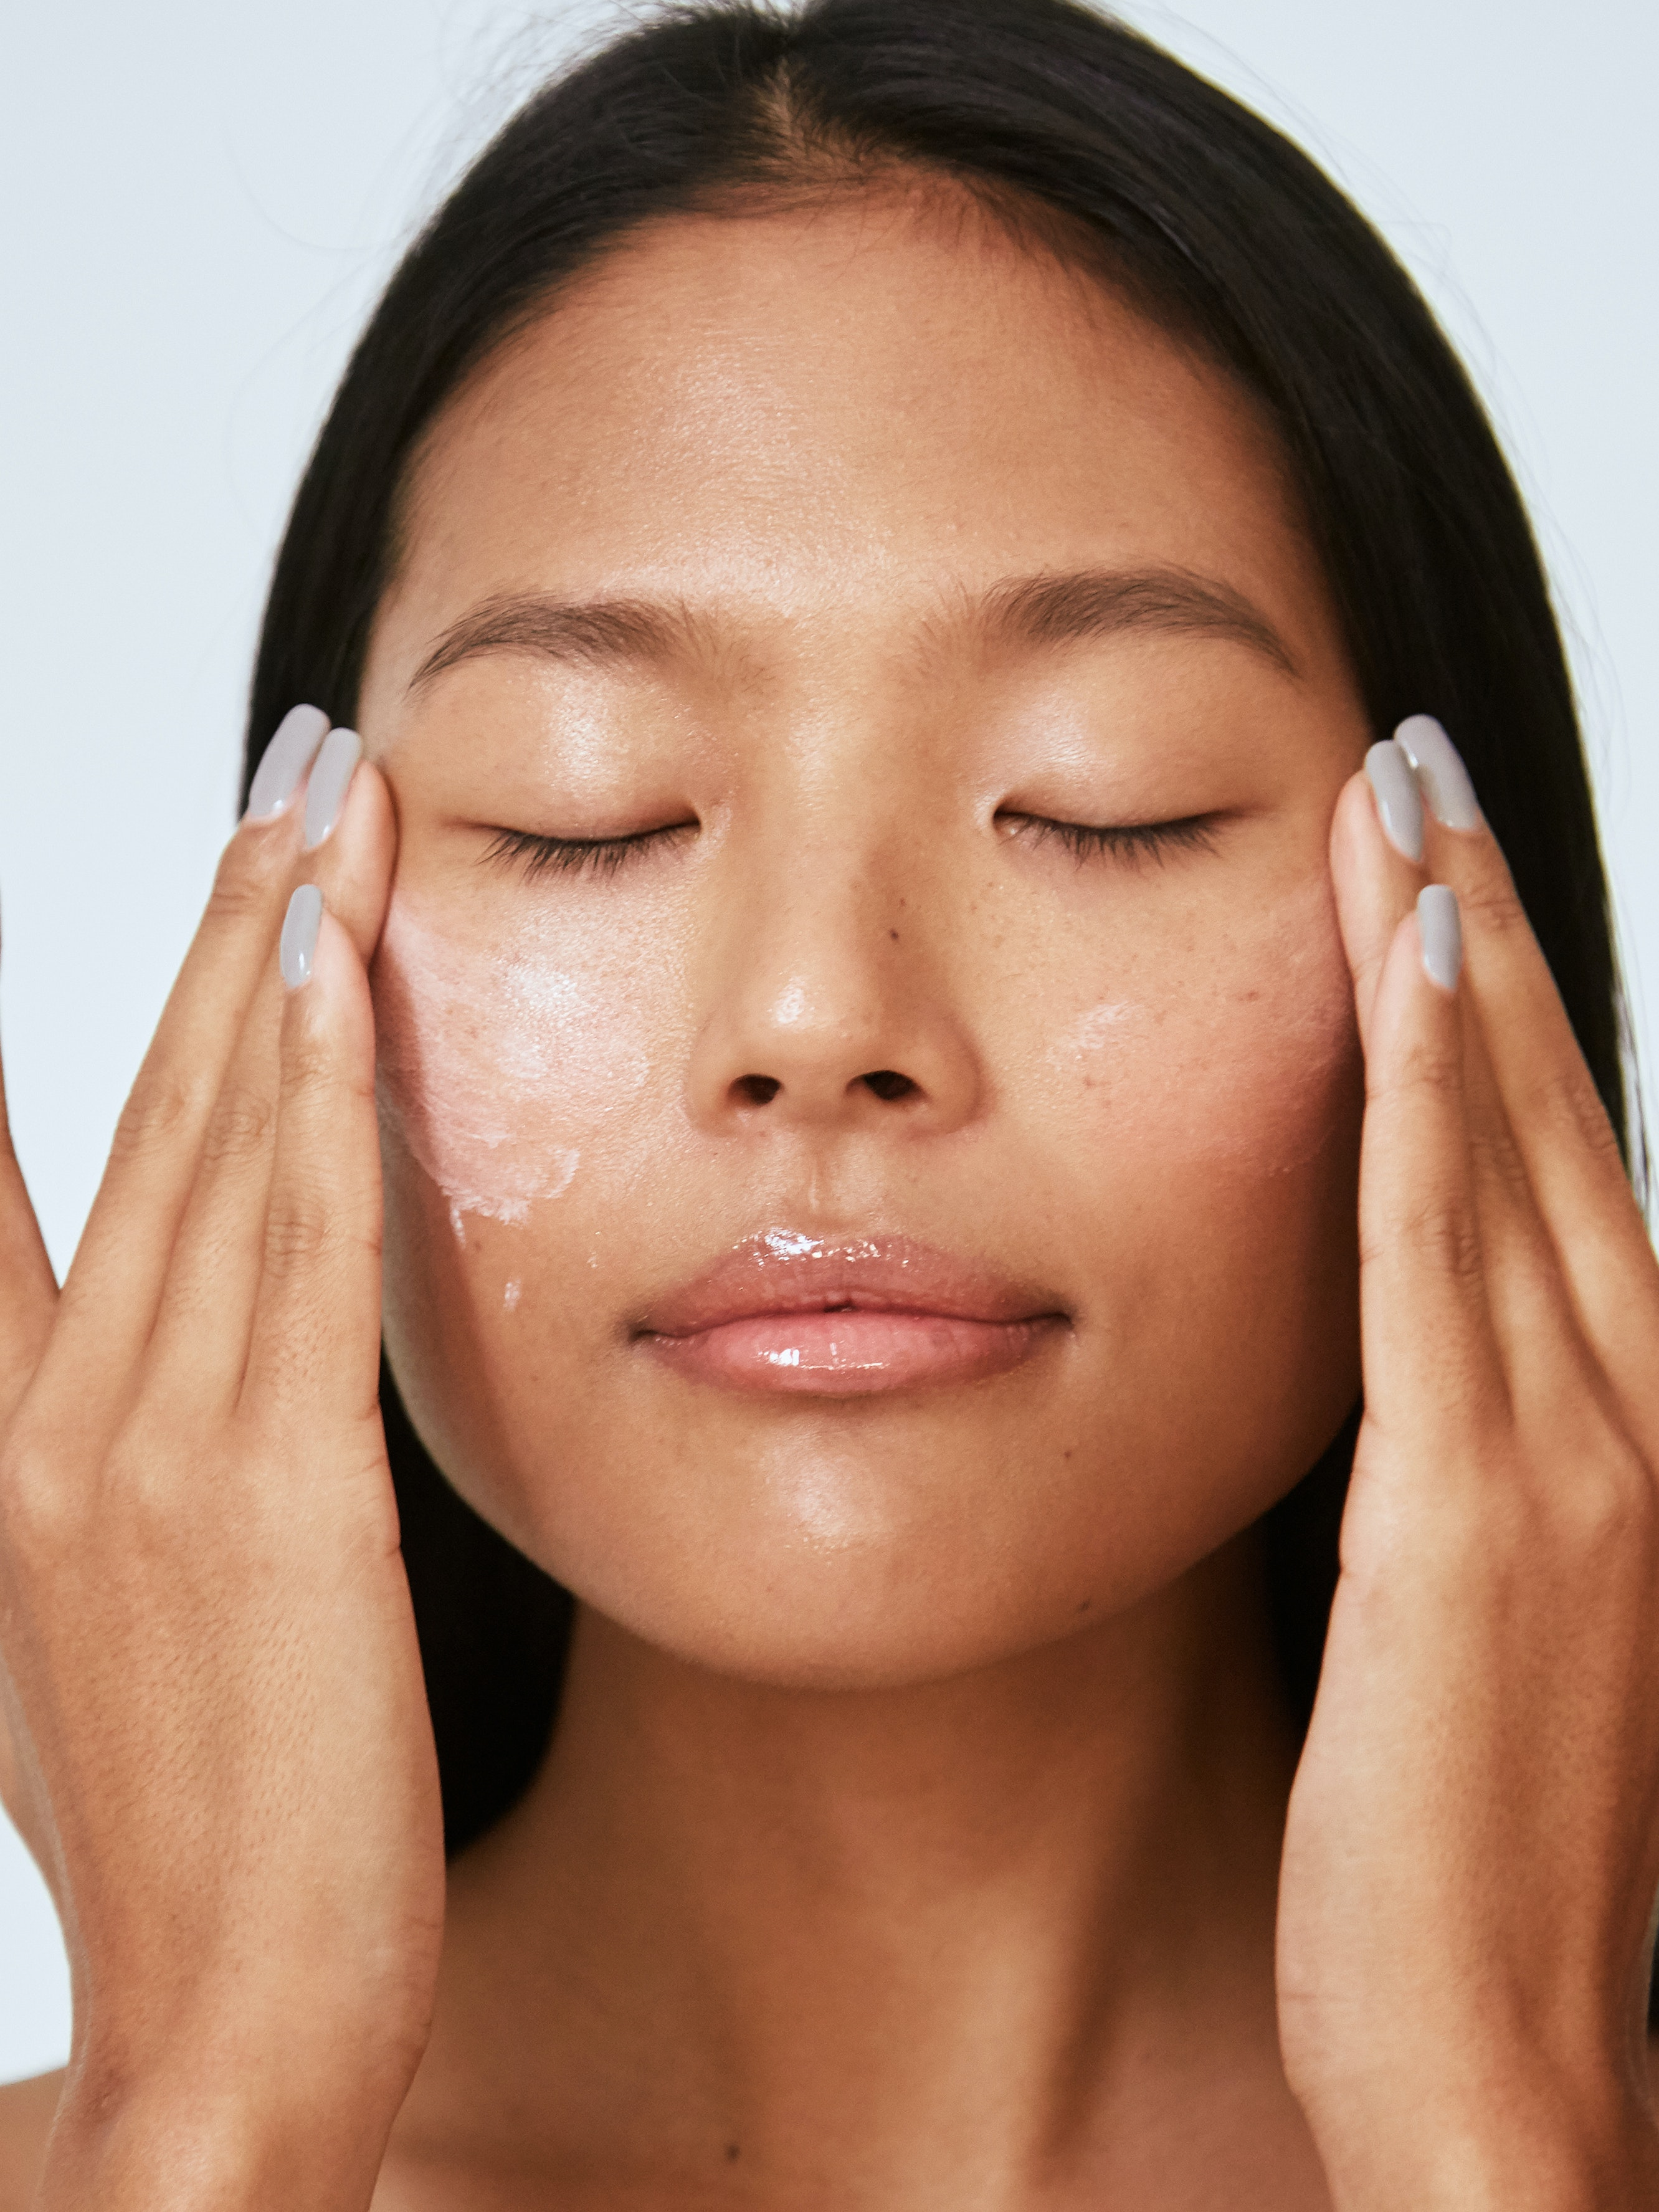 how to take care of your skin after aesthetic treatments woman applying skincare products to face